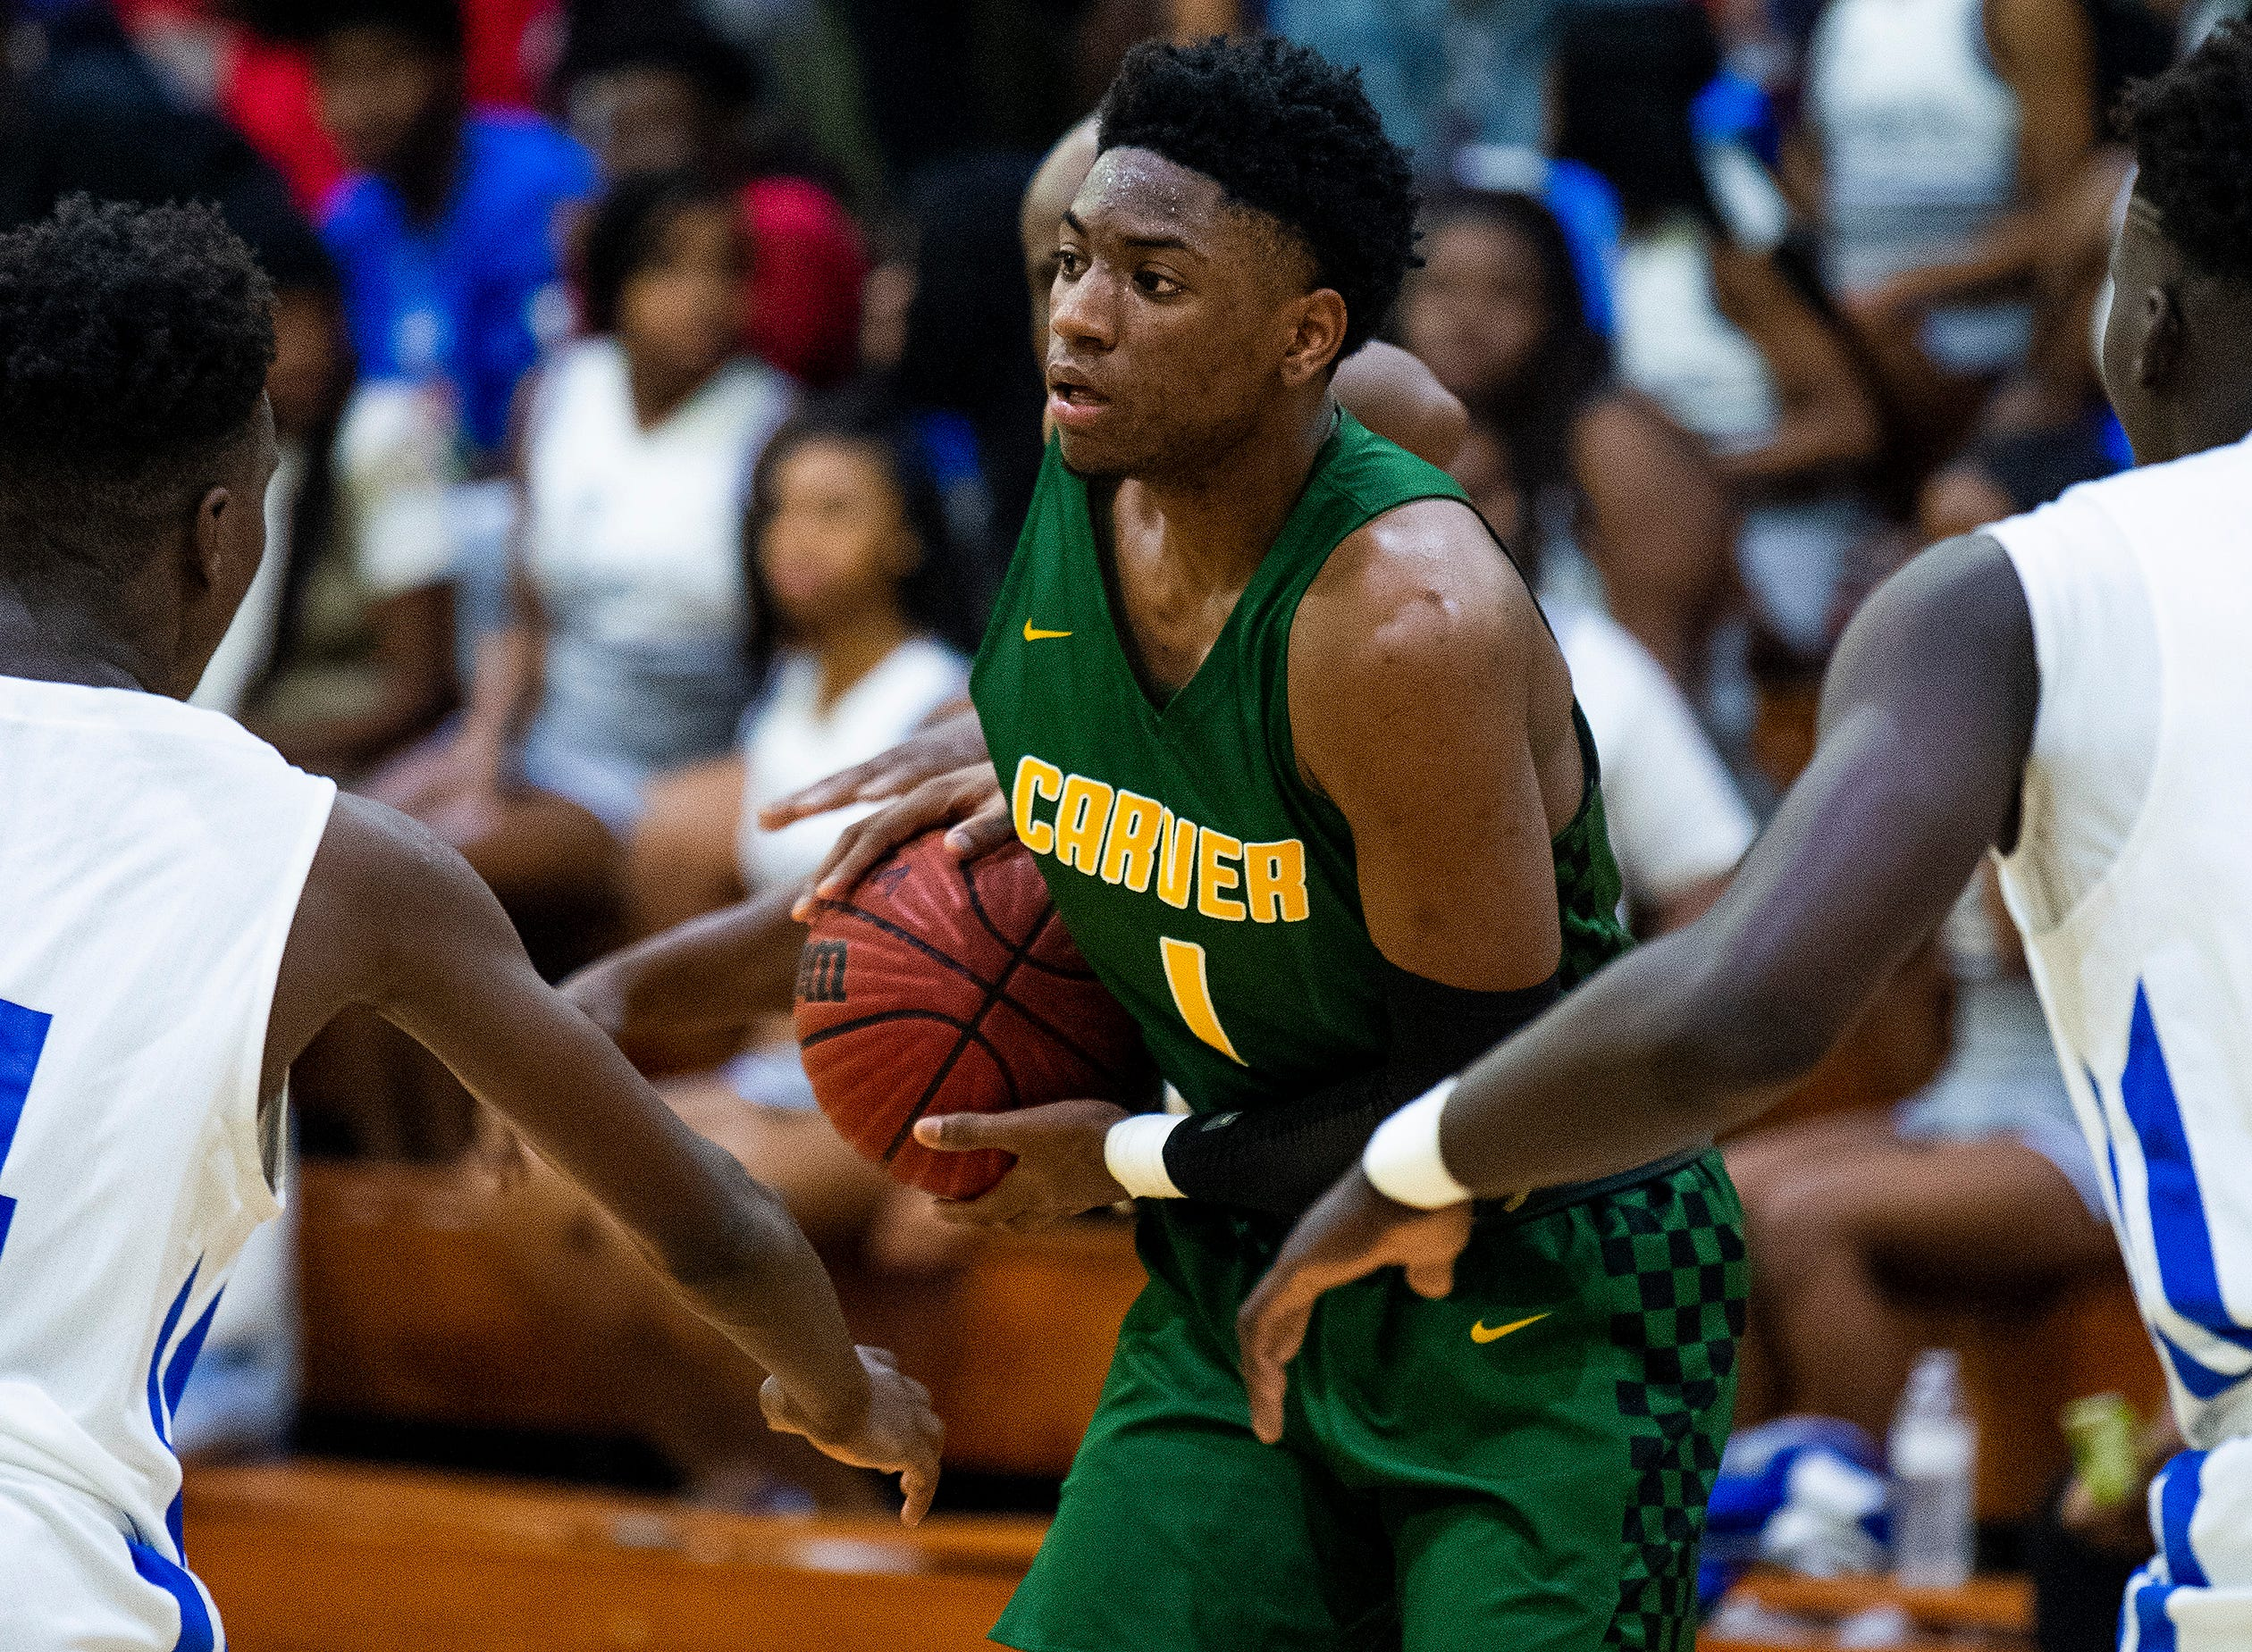 Carver's Jaykwon Walton (1) against Lanier at the Lanier campus in Montgomery, Ala., on Friday January 11, 2019.